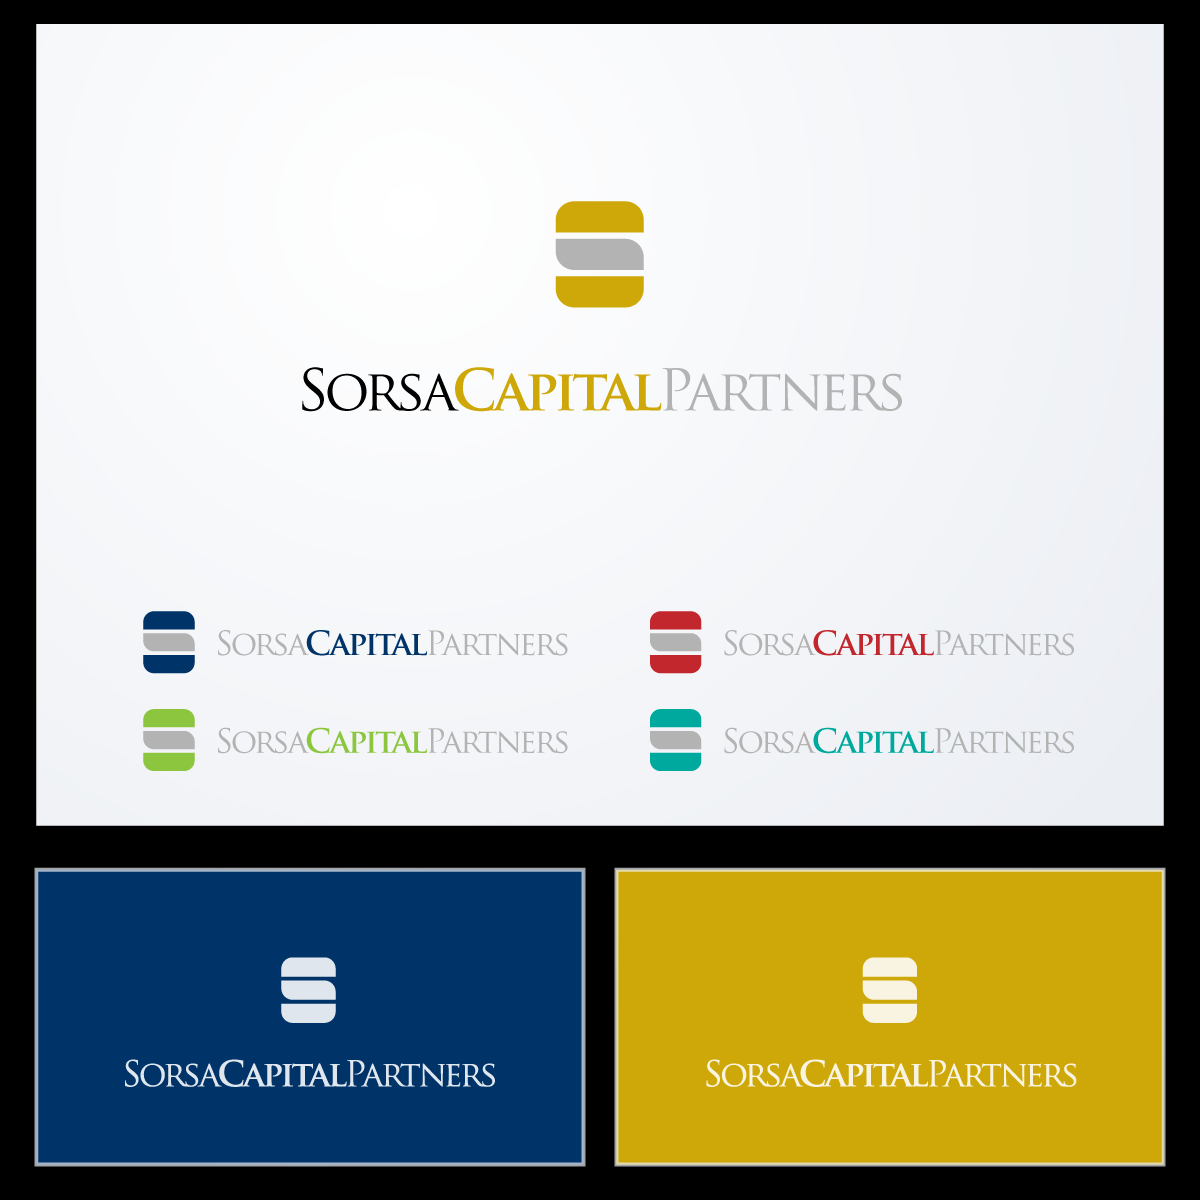 Logo Design by zesthar - Entry No. 45 in the Logo Design Contest Sorsa Capital Partners Logo Design.